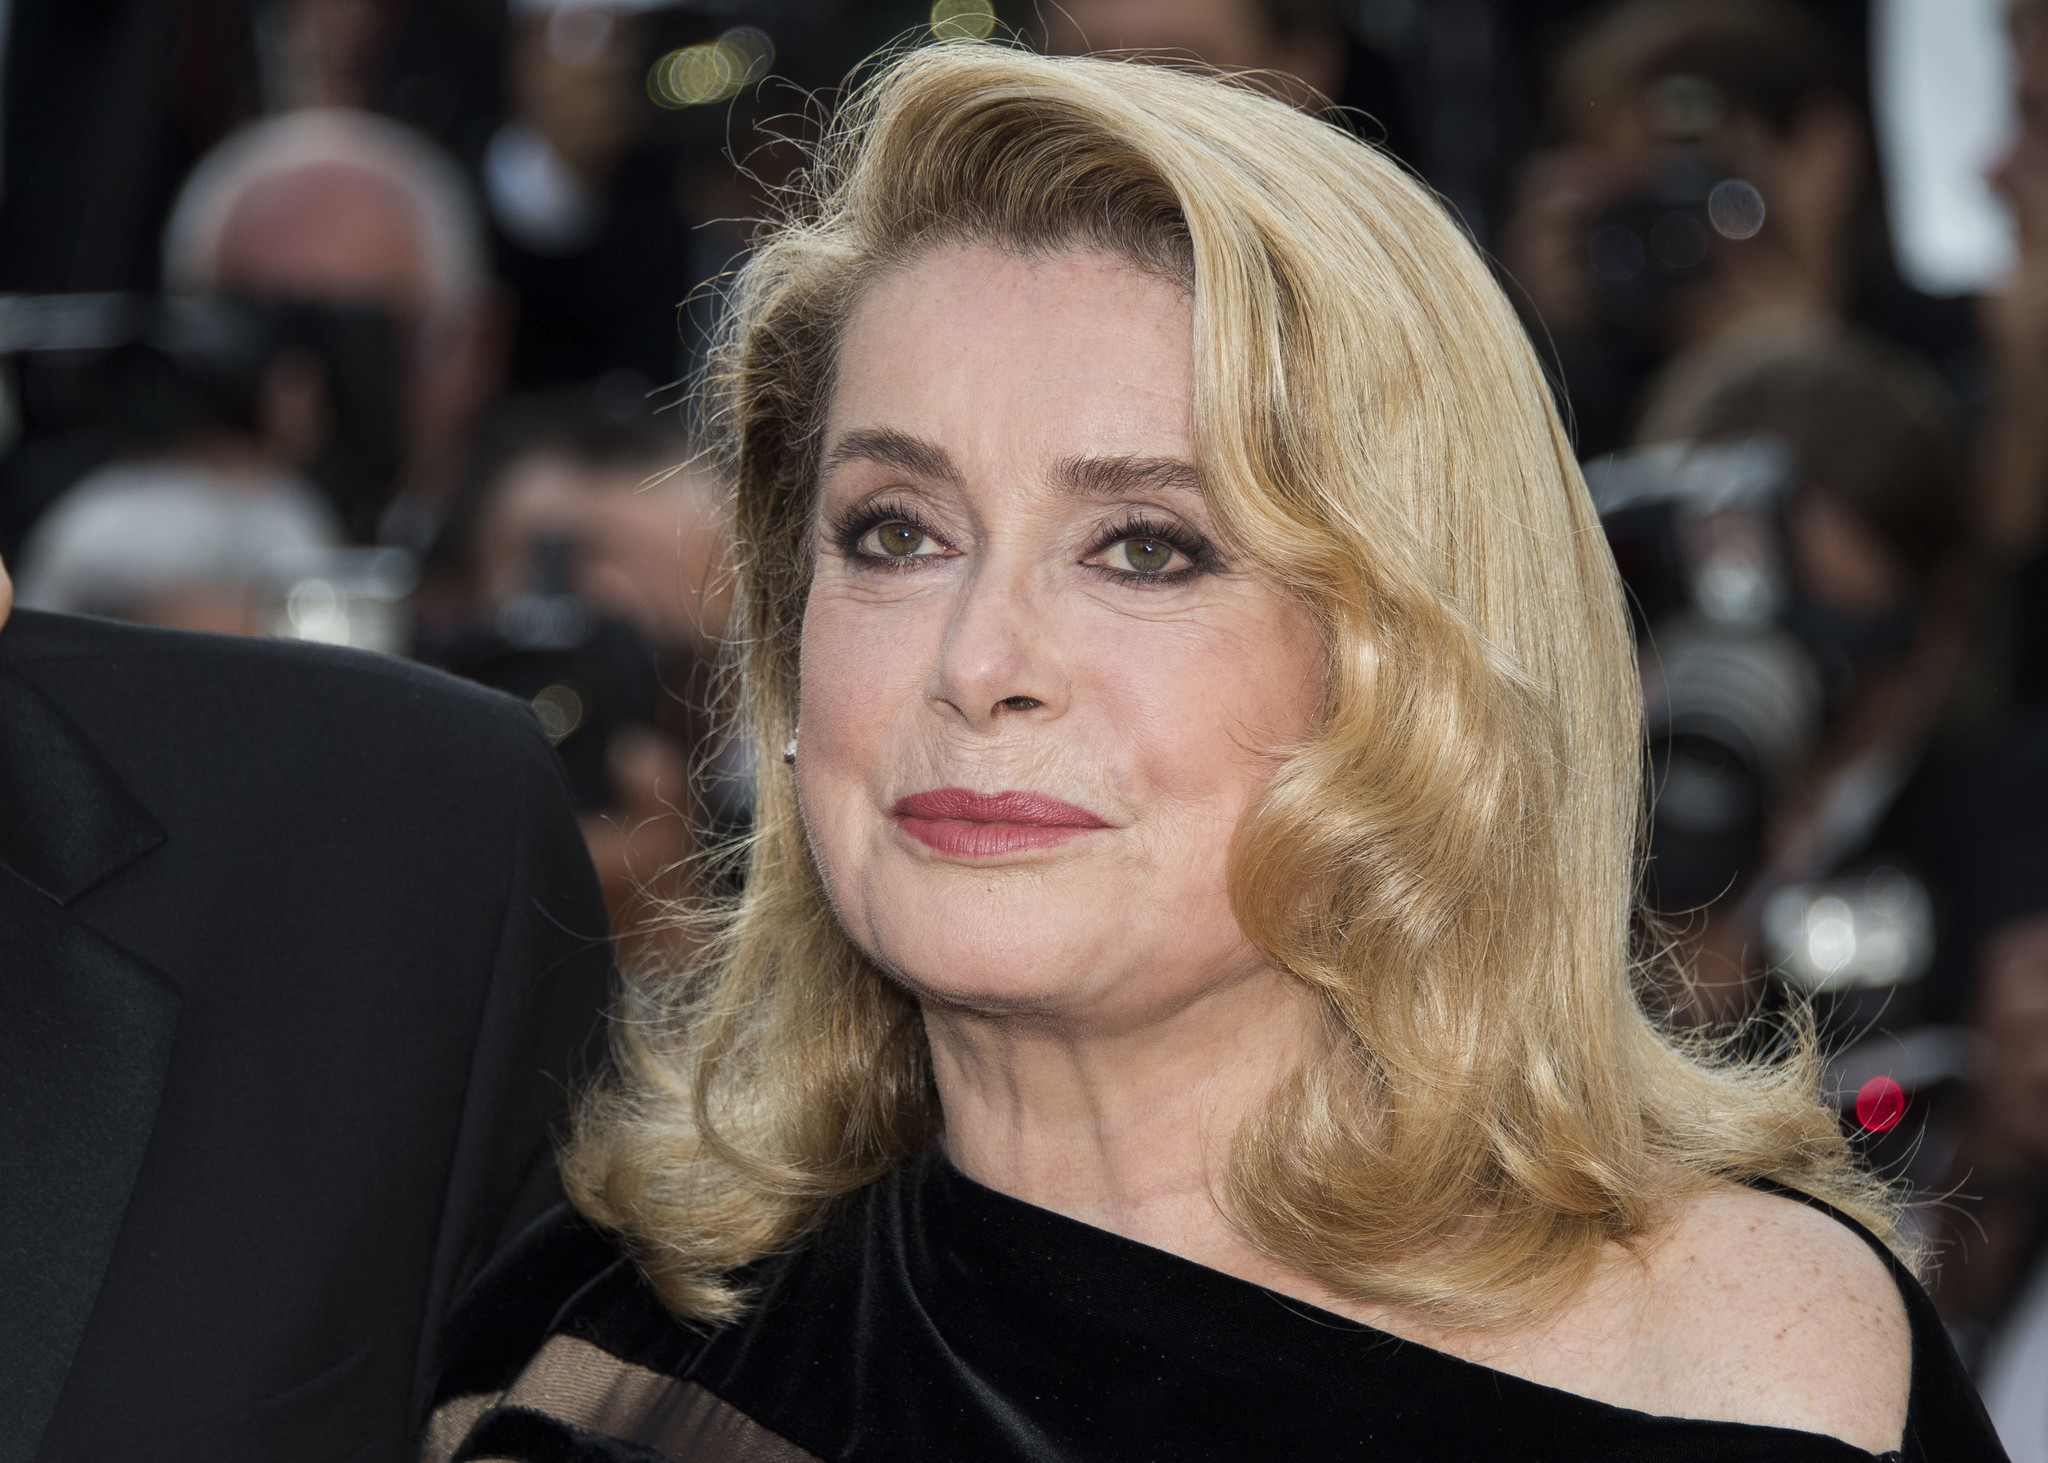 Catherine Deneuve suffers stroke while filming movie, expected to recover